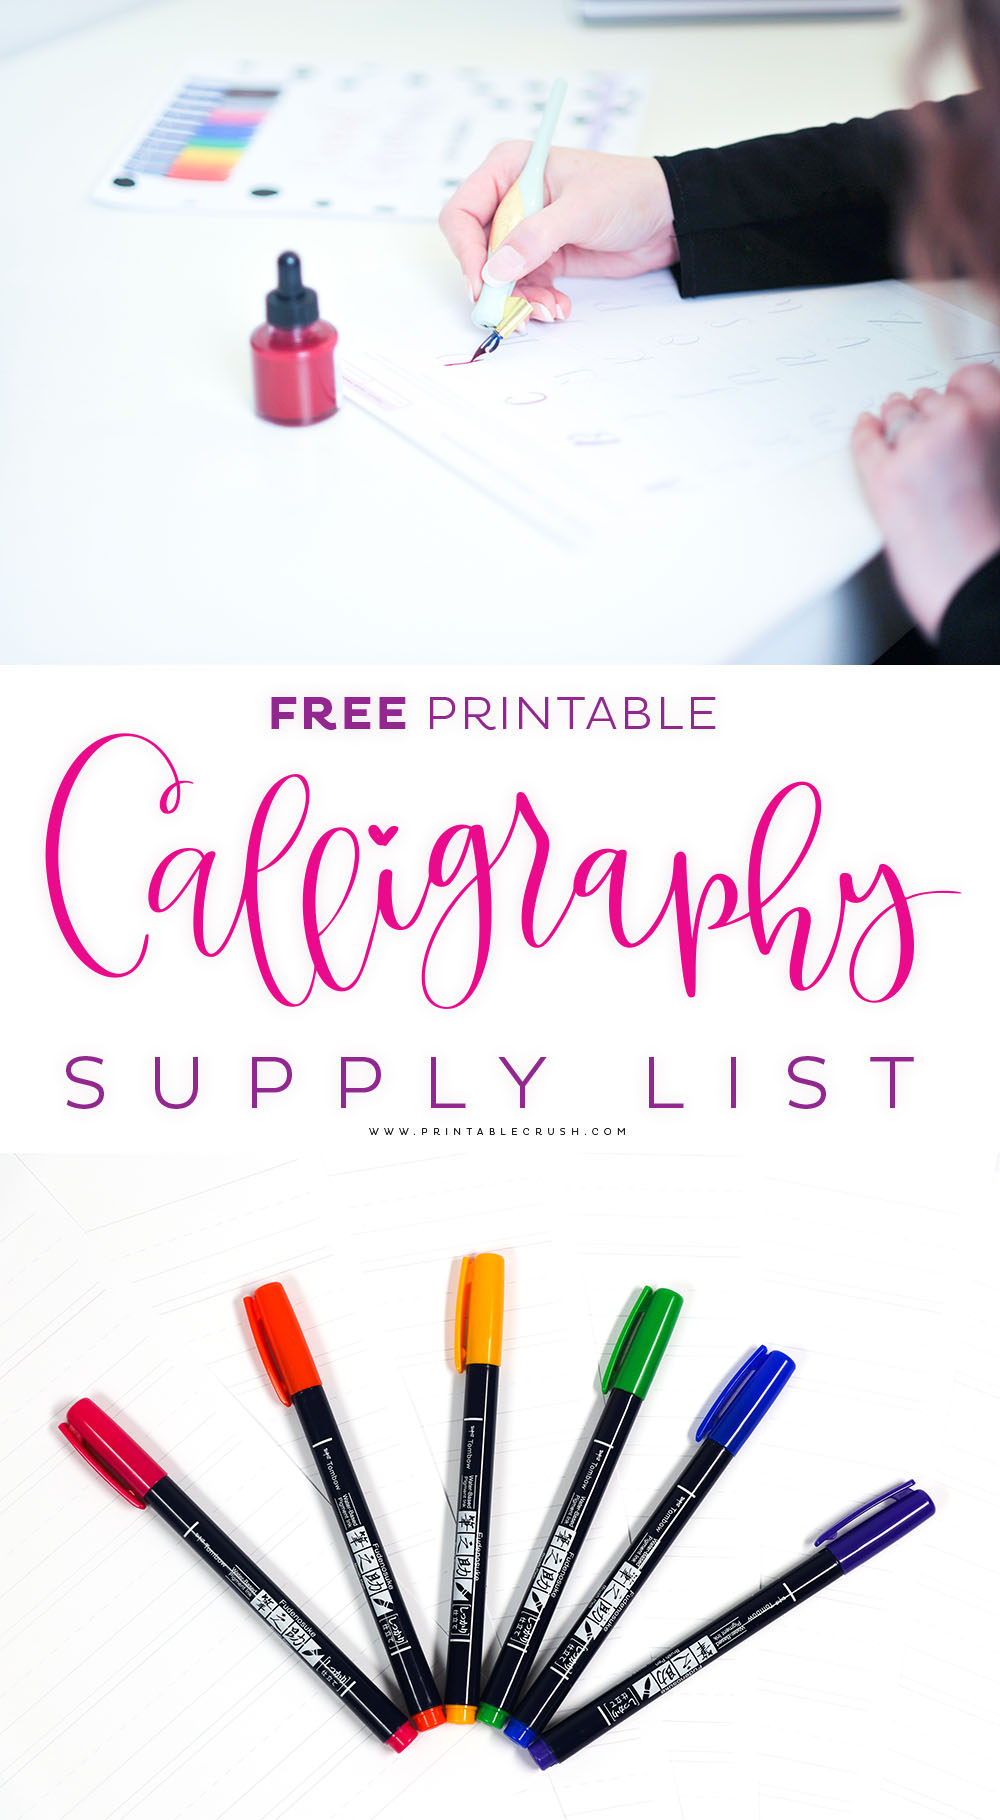 Download this FREE Casual Calligraphy Supply List to get the BEST supplies for creating calligraphy artwork! #calligraphysupplies #calligraphycourse #casualcalligraphy #calligraphylessons #letteringsupplies #calligraphy via @printablecrush